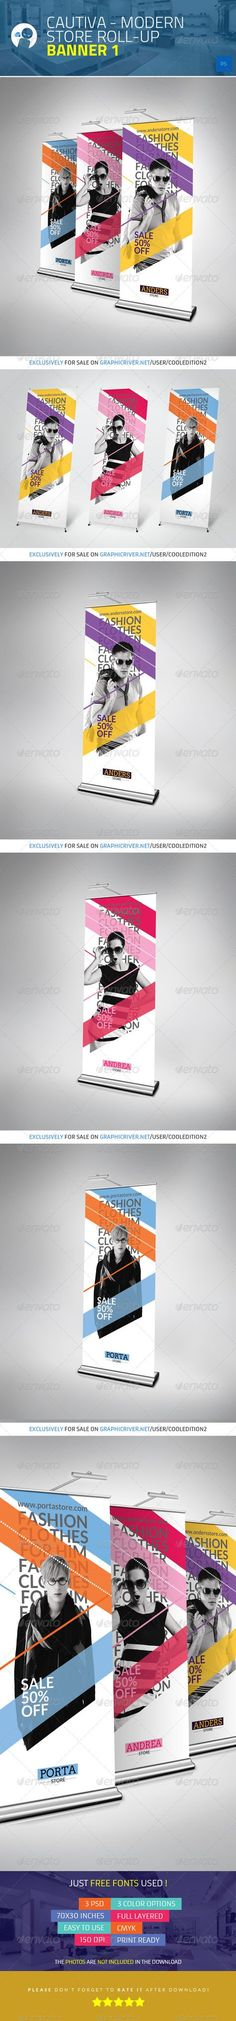 Cautiva - Modern Store - Roll Up Banner 1 - Signage Print Templates Ad Design, Book Design, Print Design, Graphic Design, Rollup Design, Standing Banner Design, Pop Up Banner, Modern Store, Retractable Banner